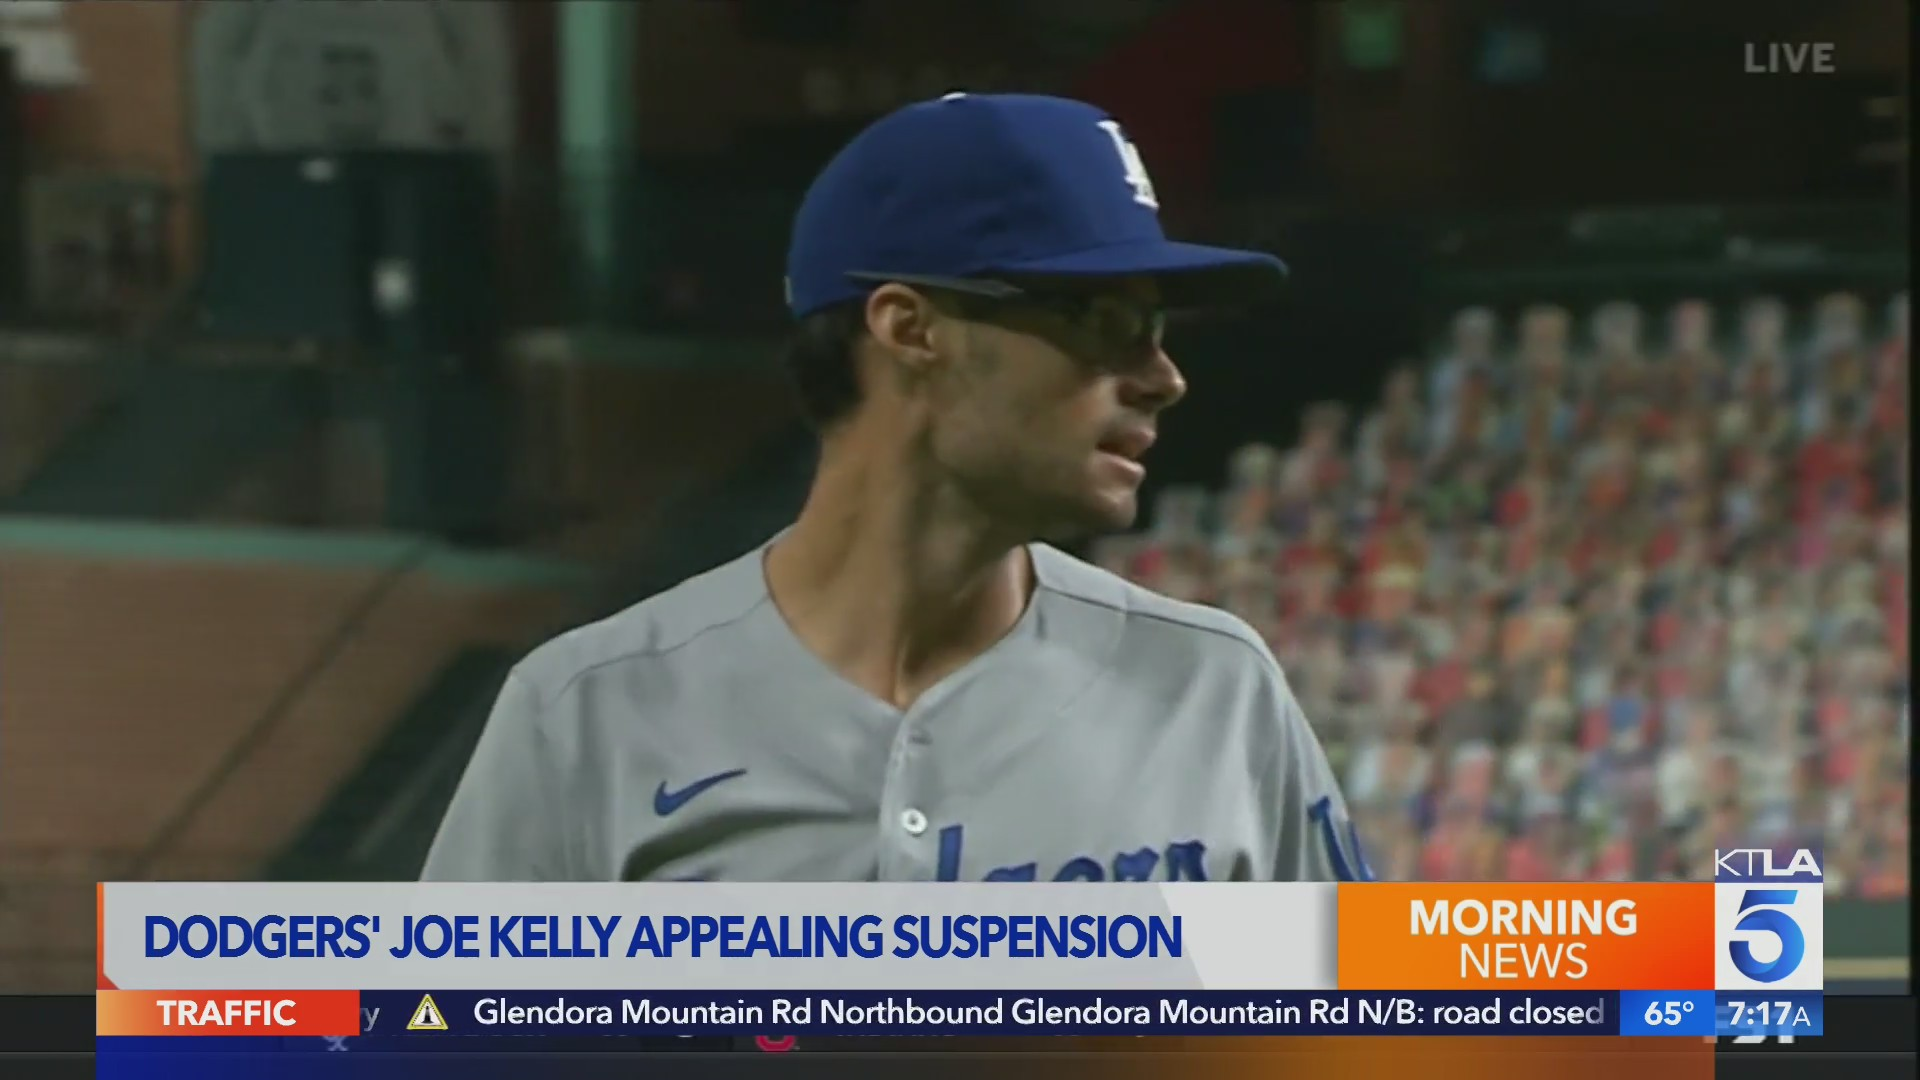 SPORTS TREVOR LANE ON JOE KELLY SUSPENSION